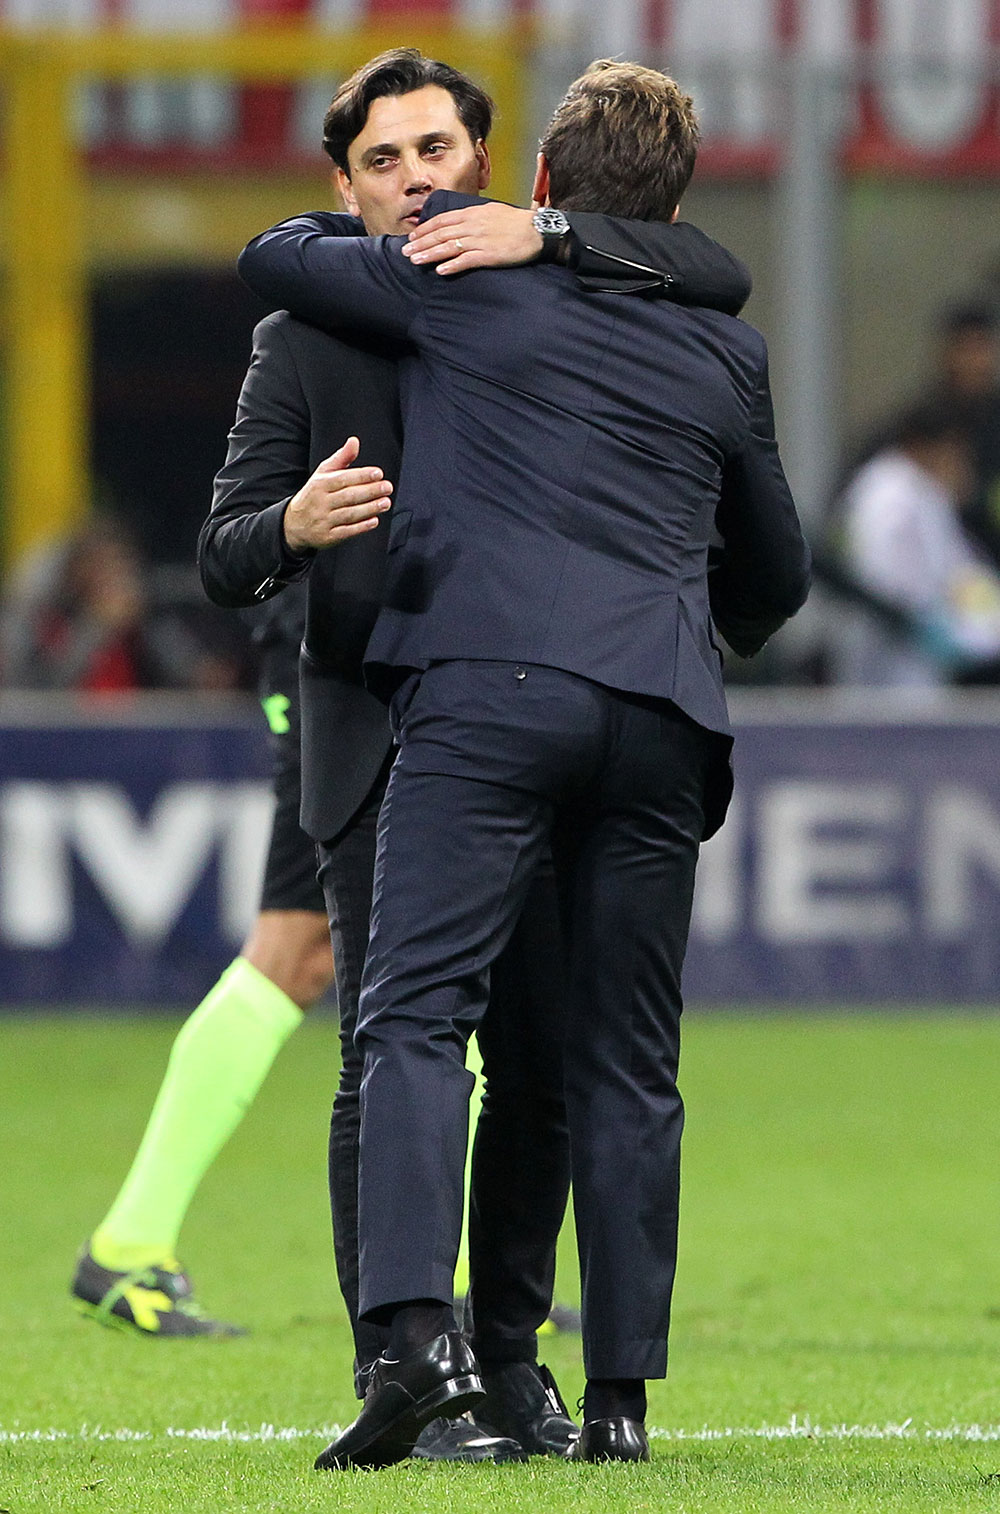 Vincenzo Montella and Eusebio Di Francesco at the end of Milan-Roma at Stadio San Siro on October 1, 2017. (Photo by Marco Luzzani/Getty Images)